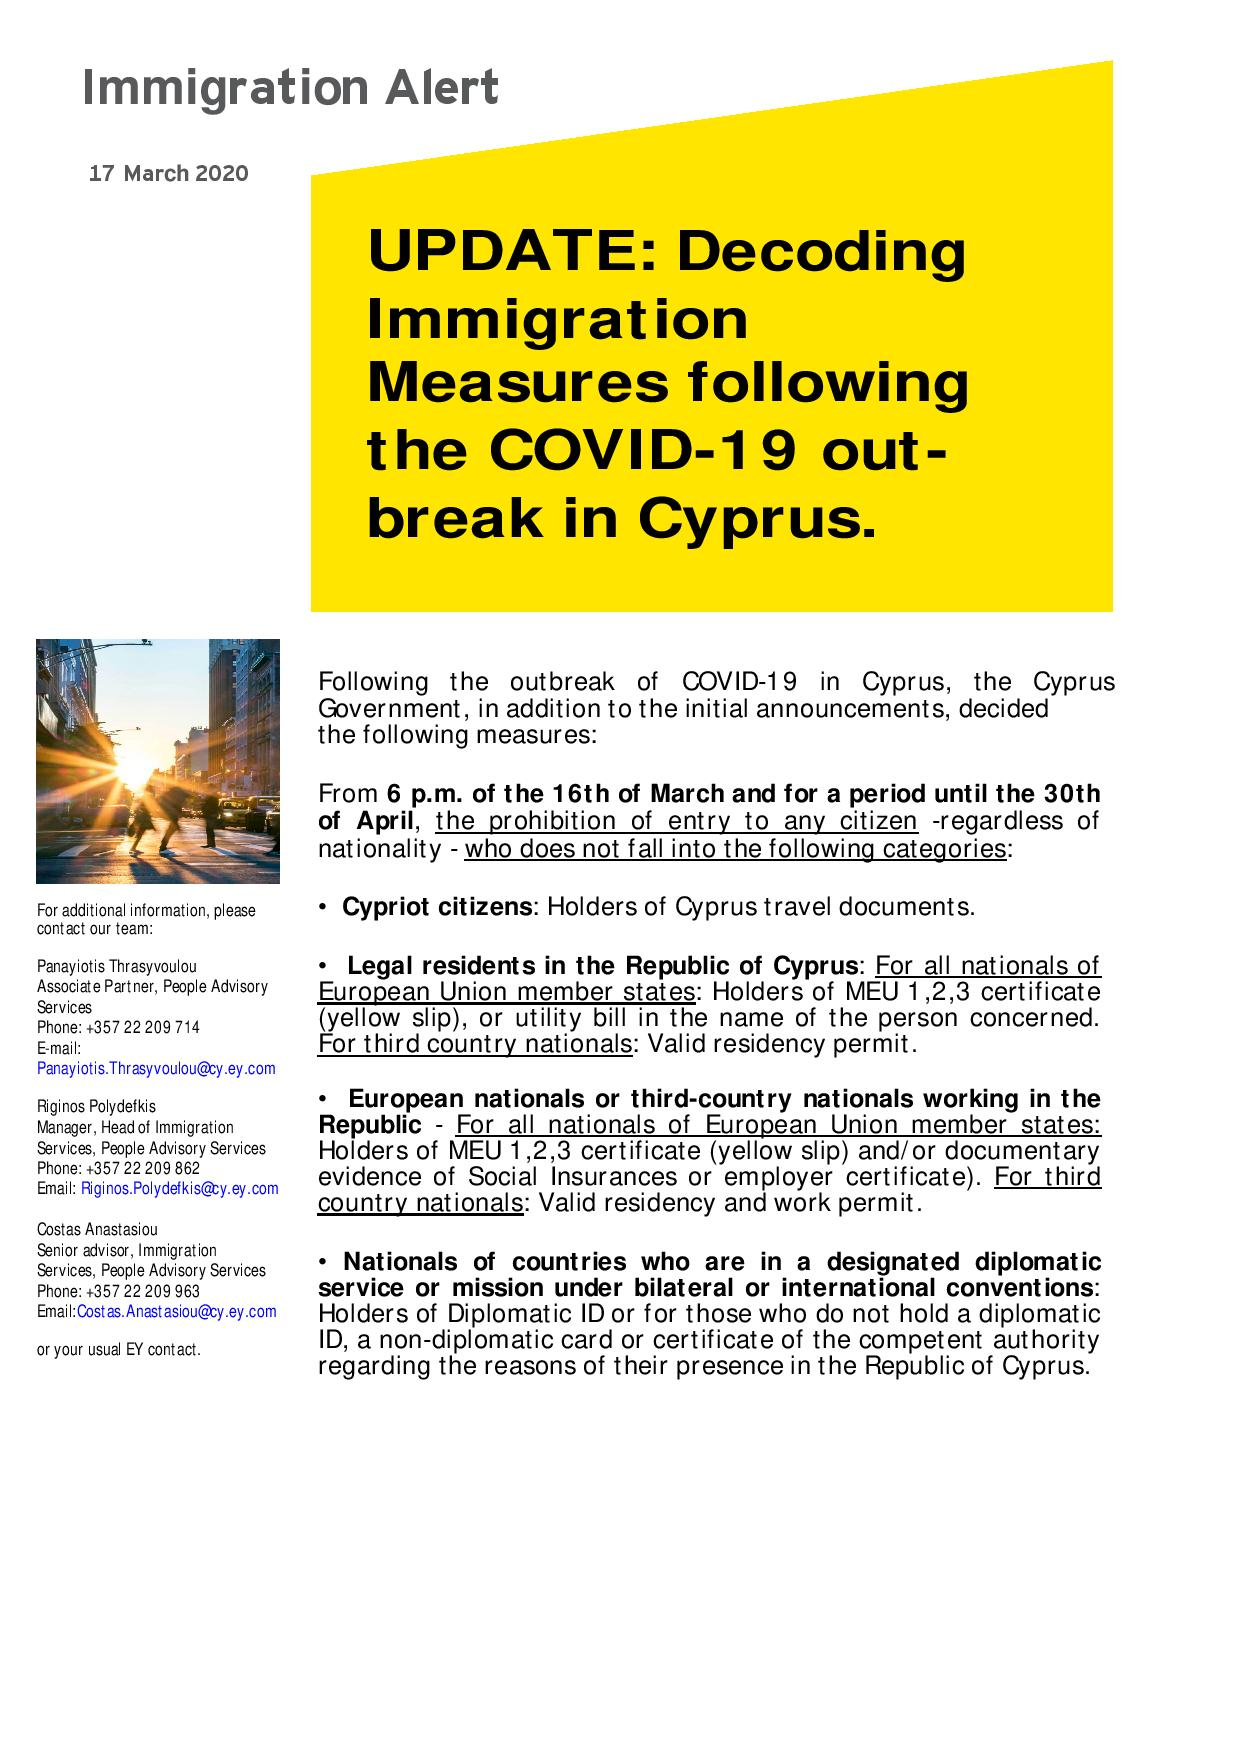 EY Cyprus: UPDATE: Decoding Immigration Measures following the COVID-19 outbreak in Cyprus